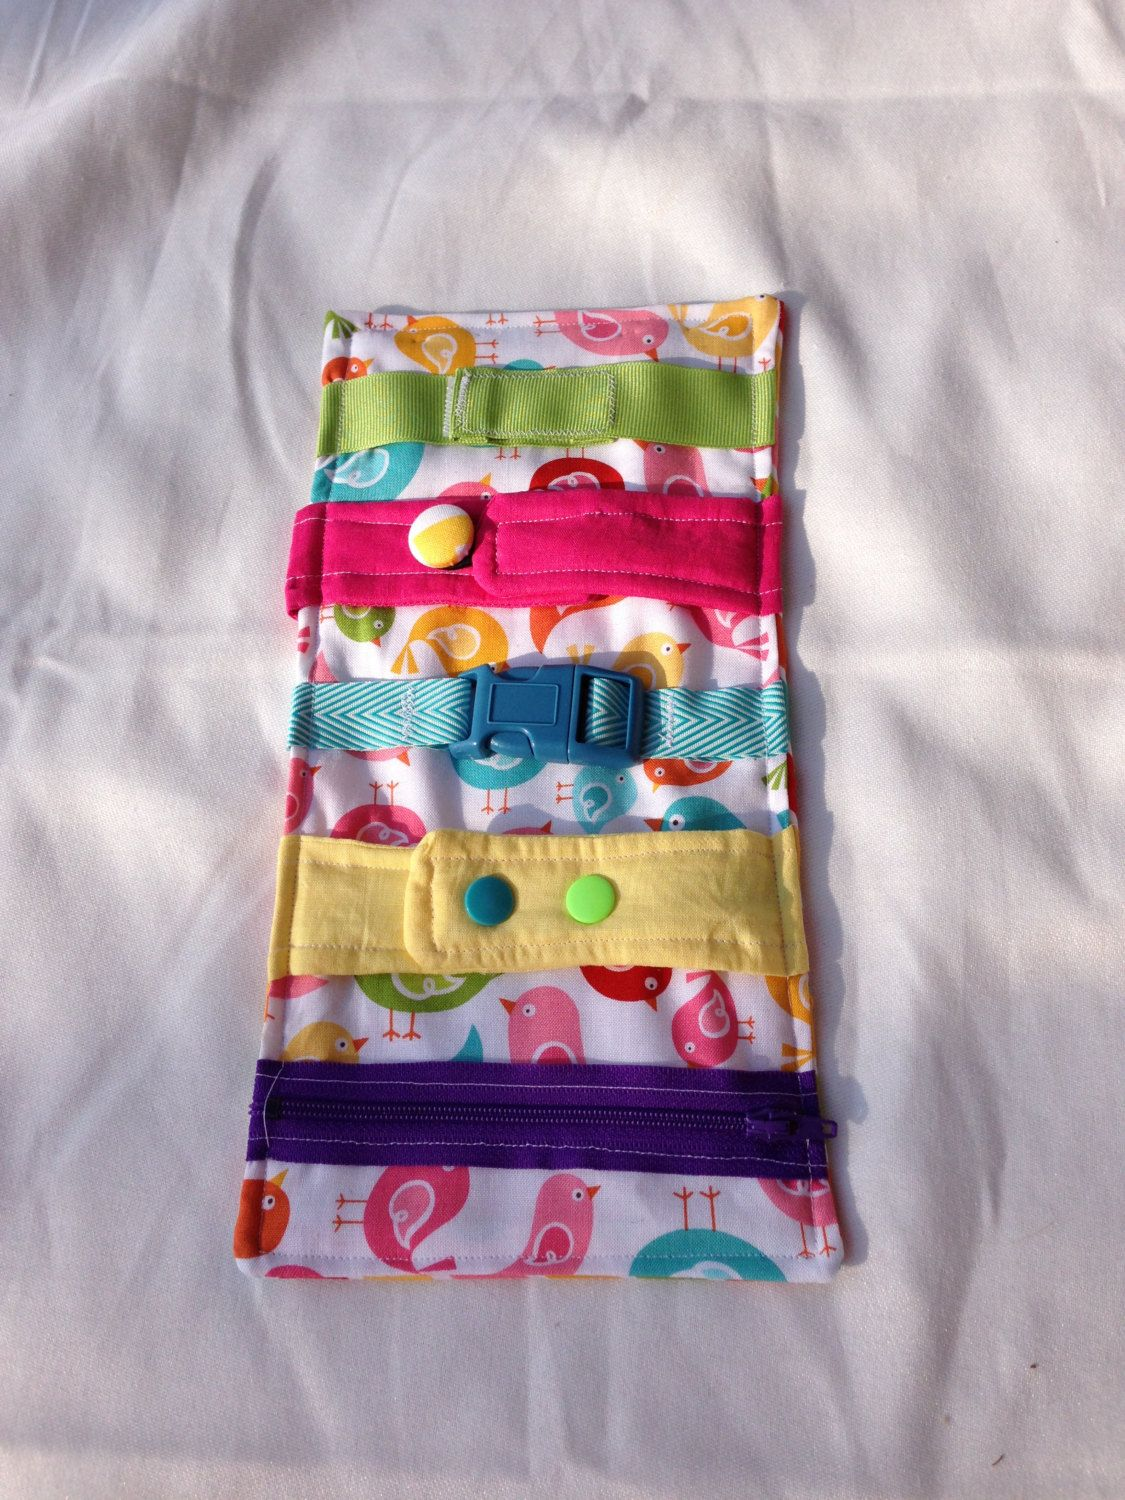 Birds Busy blanket - a buckle, snap, zip, Velcro, and button toy ...